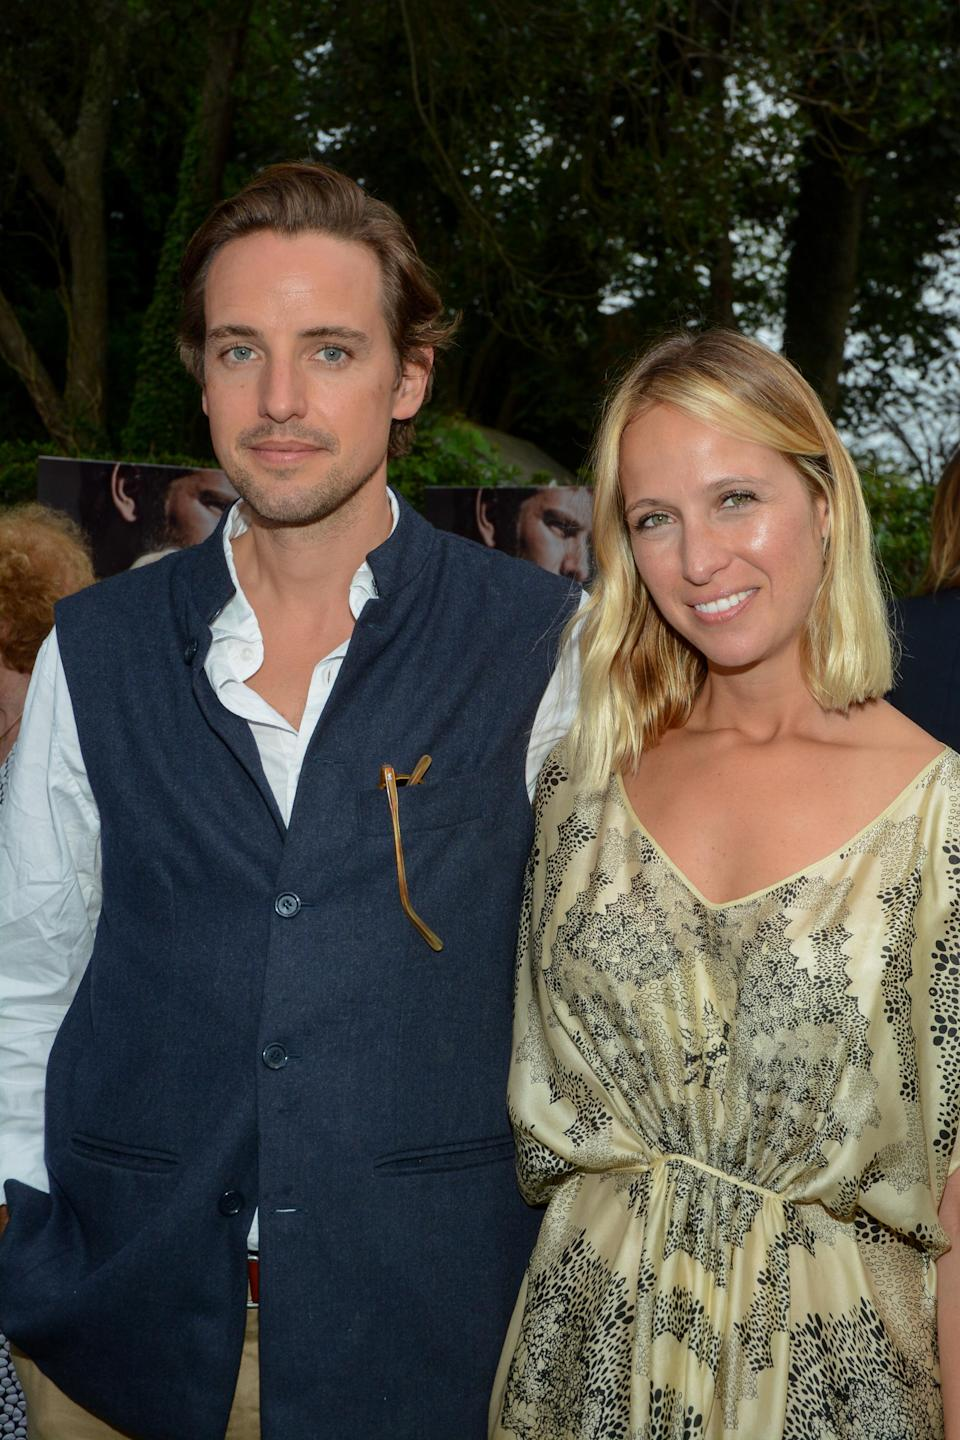 The designer was also married to one of Harry's best friends, Alexander Gilkes [Photo: Getty]